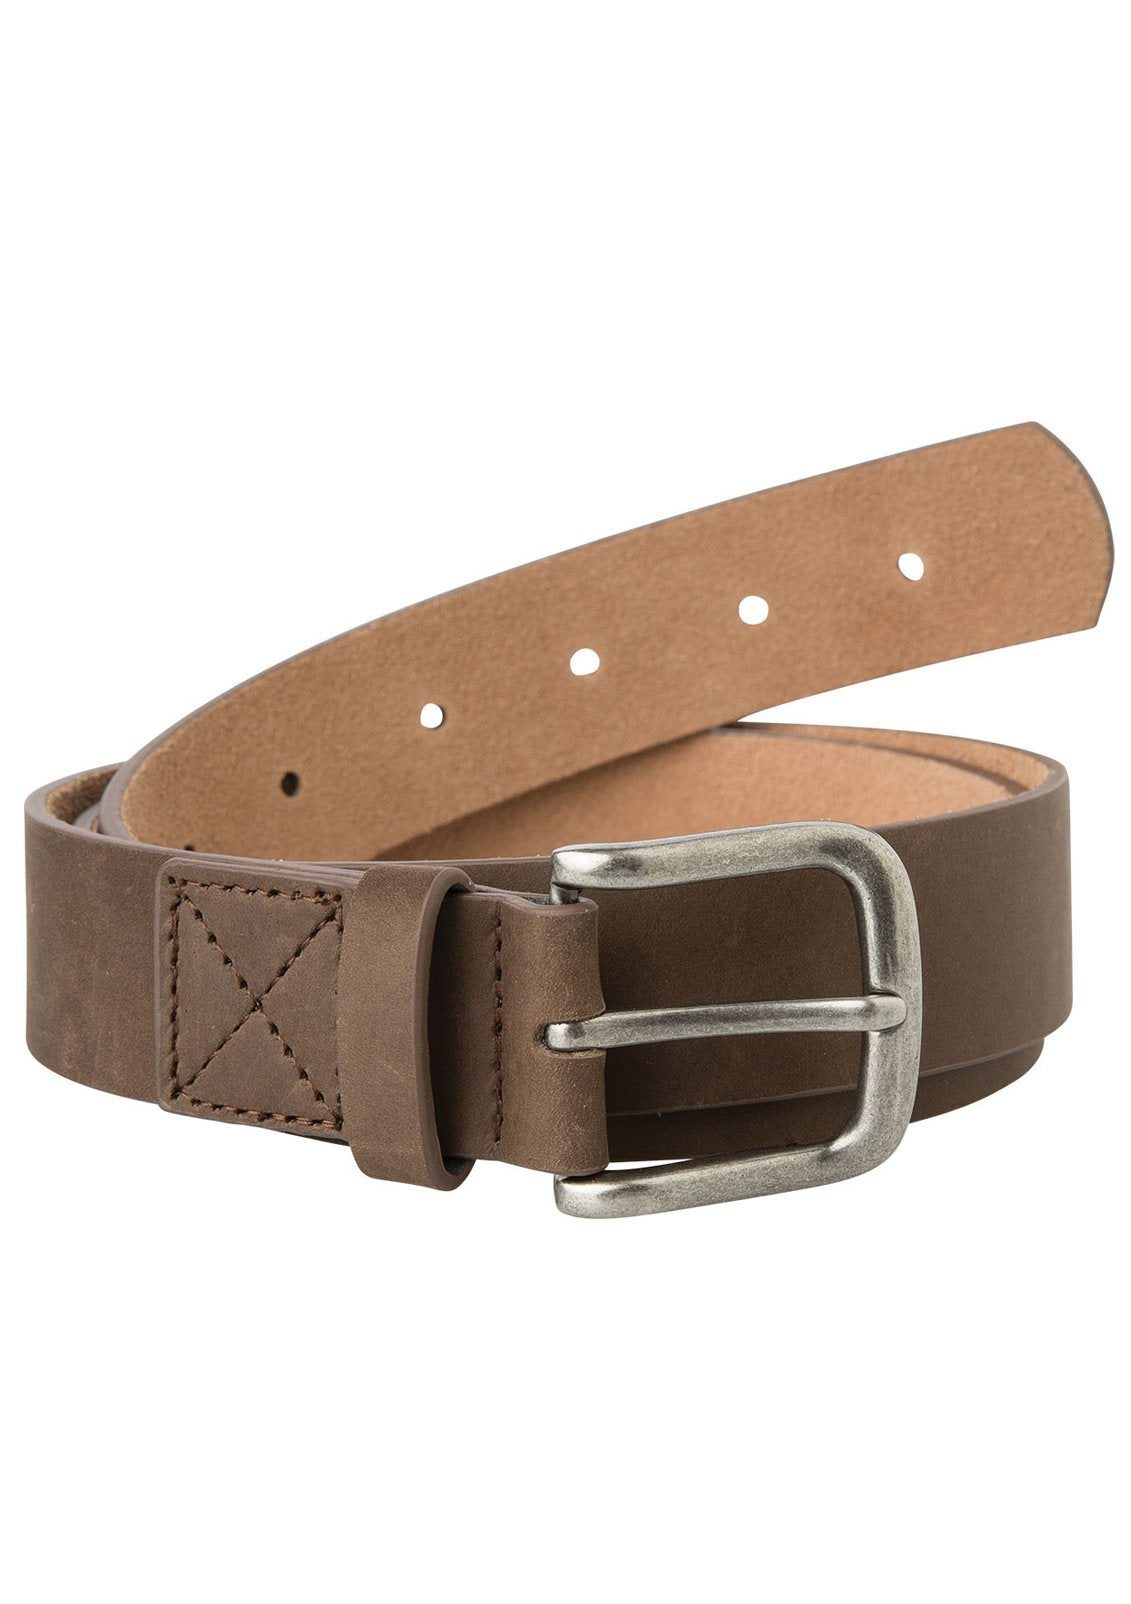 RVCA Bundy Leather Belt